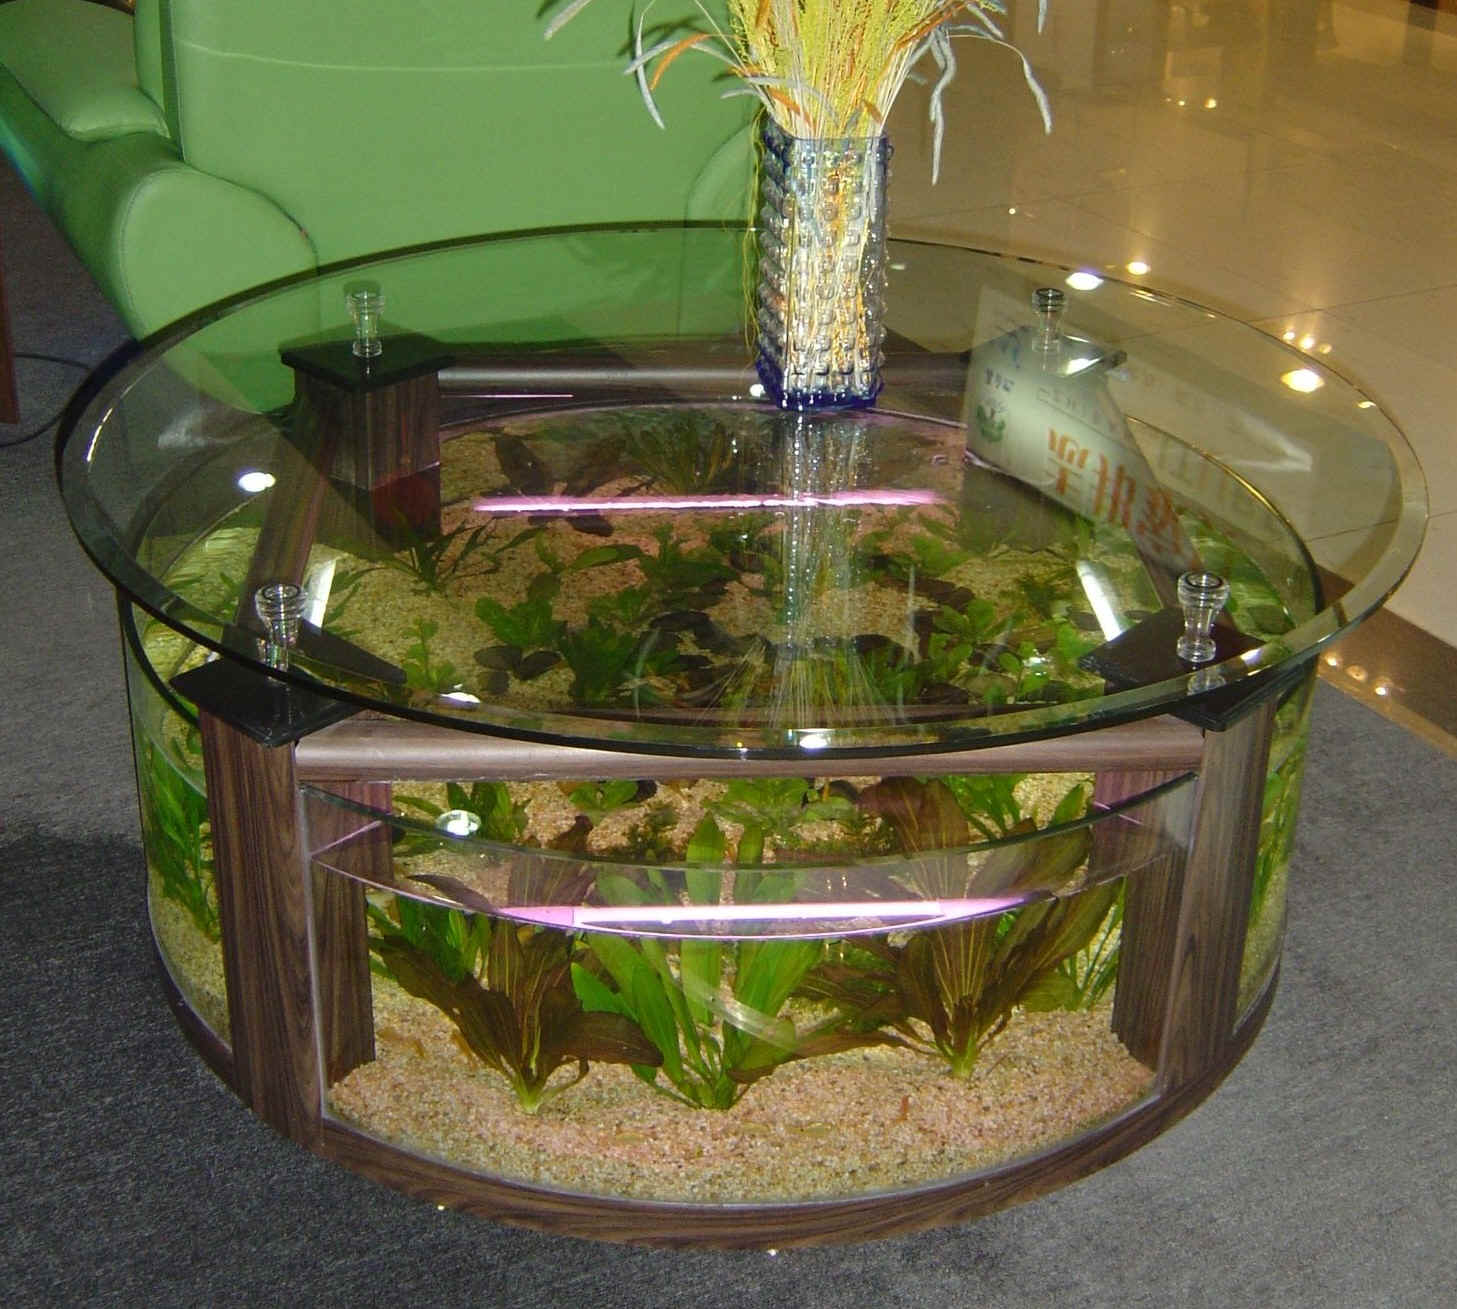 Fish aquarium karachi - Half Circle Desks